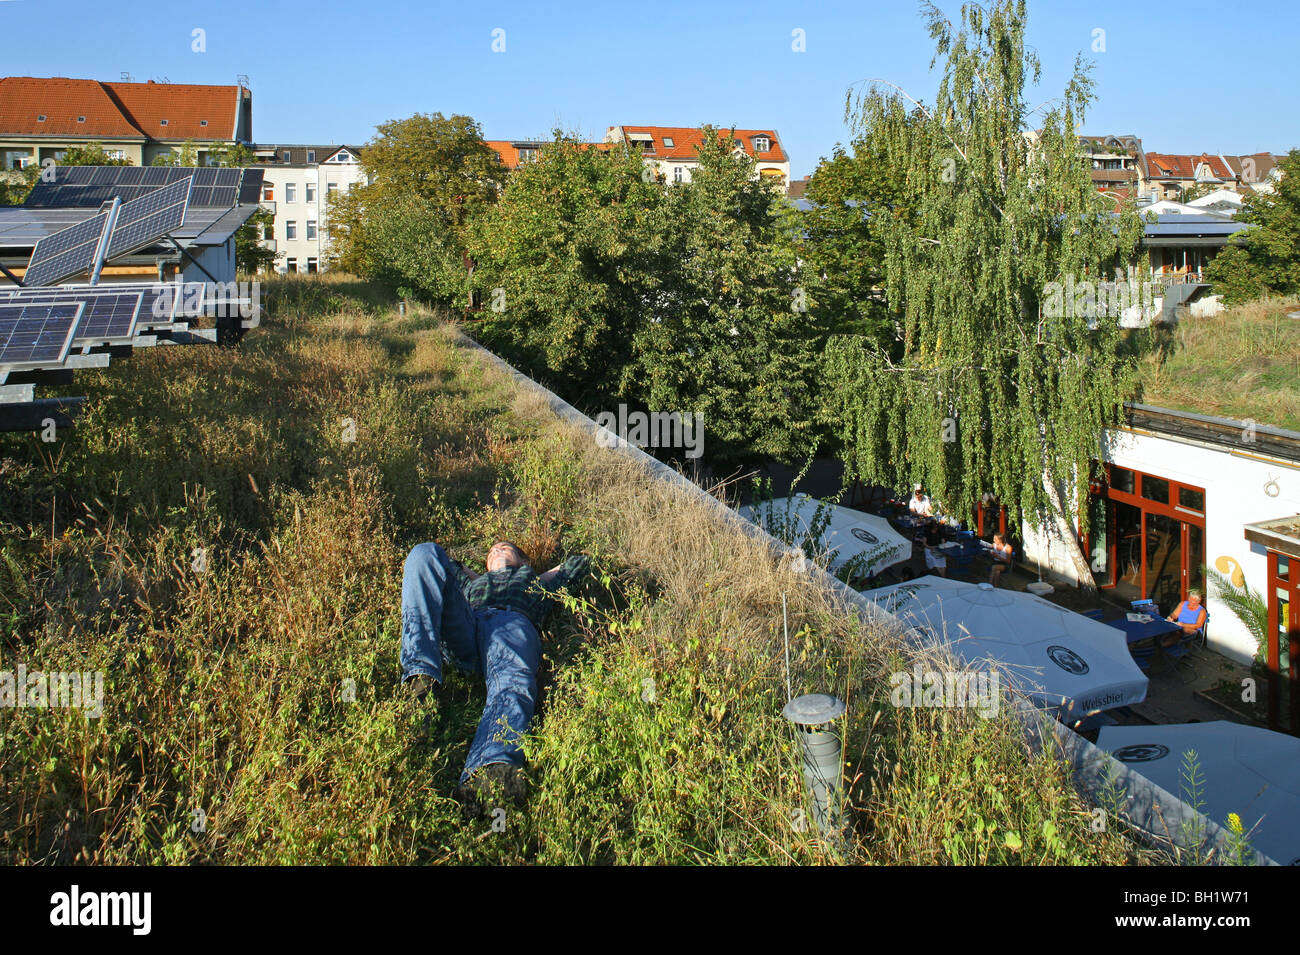 greened roof with solar panels, UFA, International Center for Culture and Ecology, Berlin - Stock Image